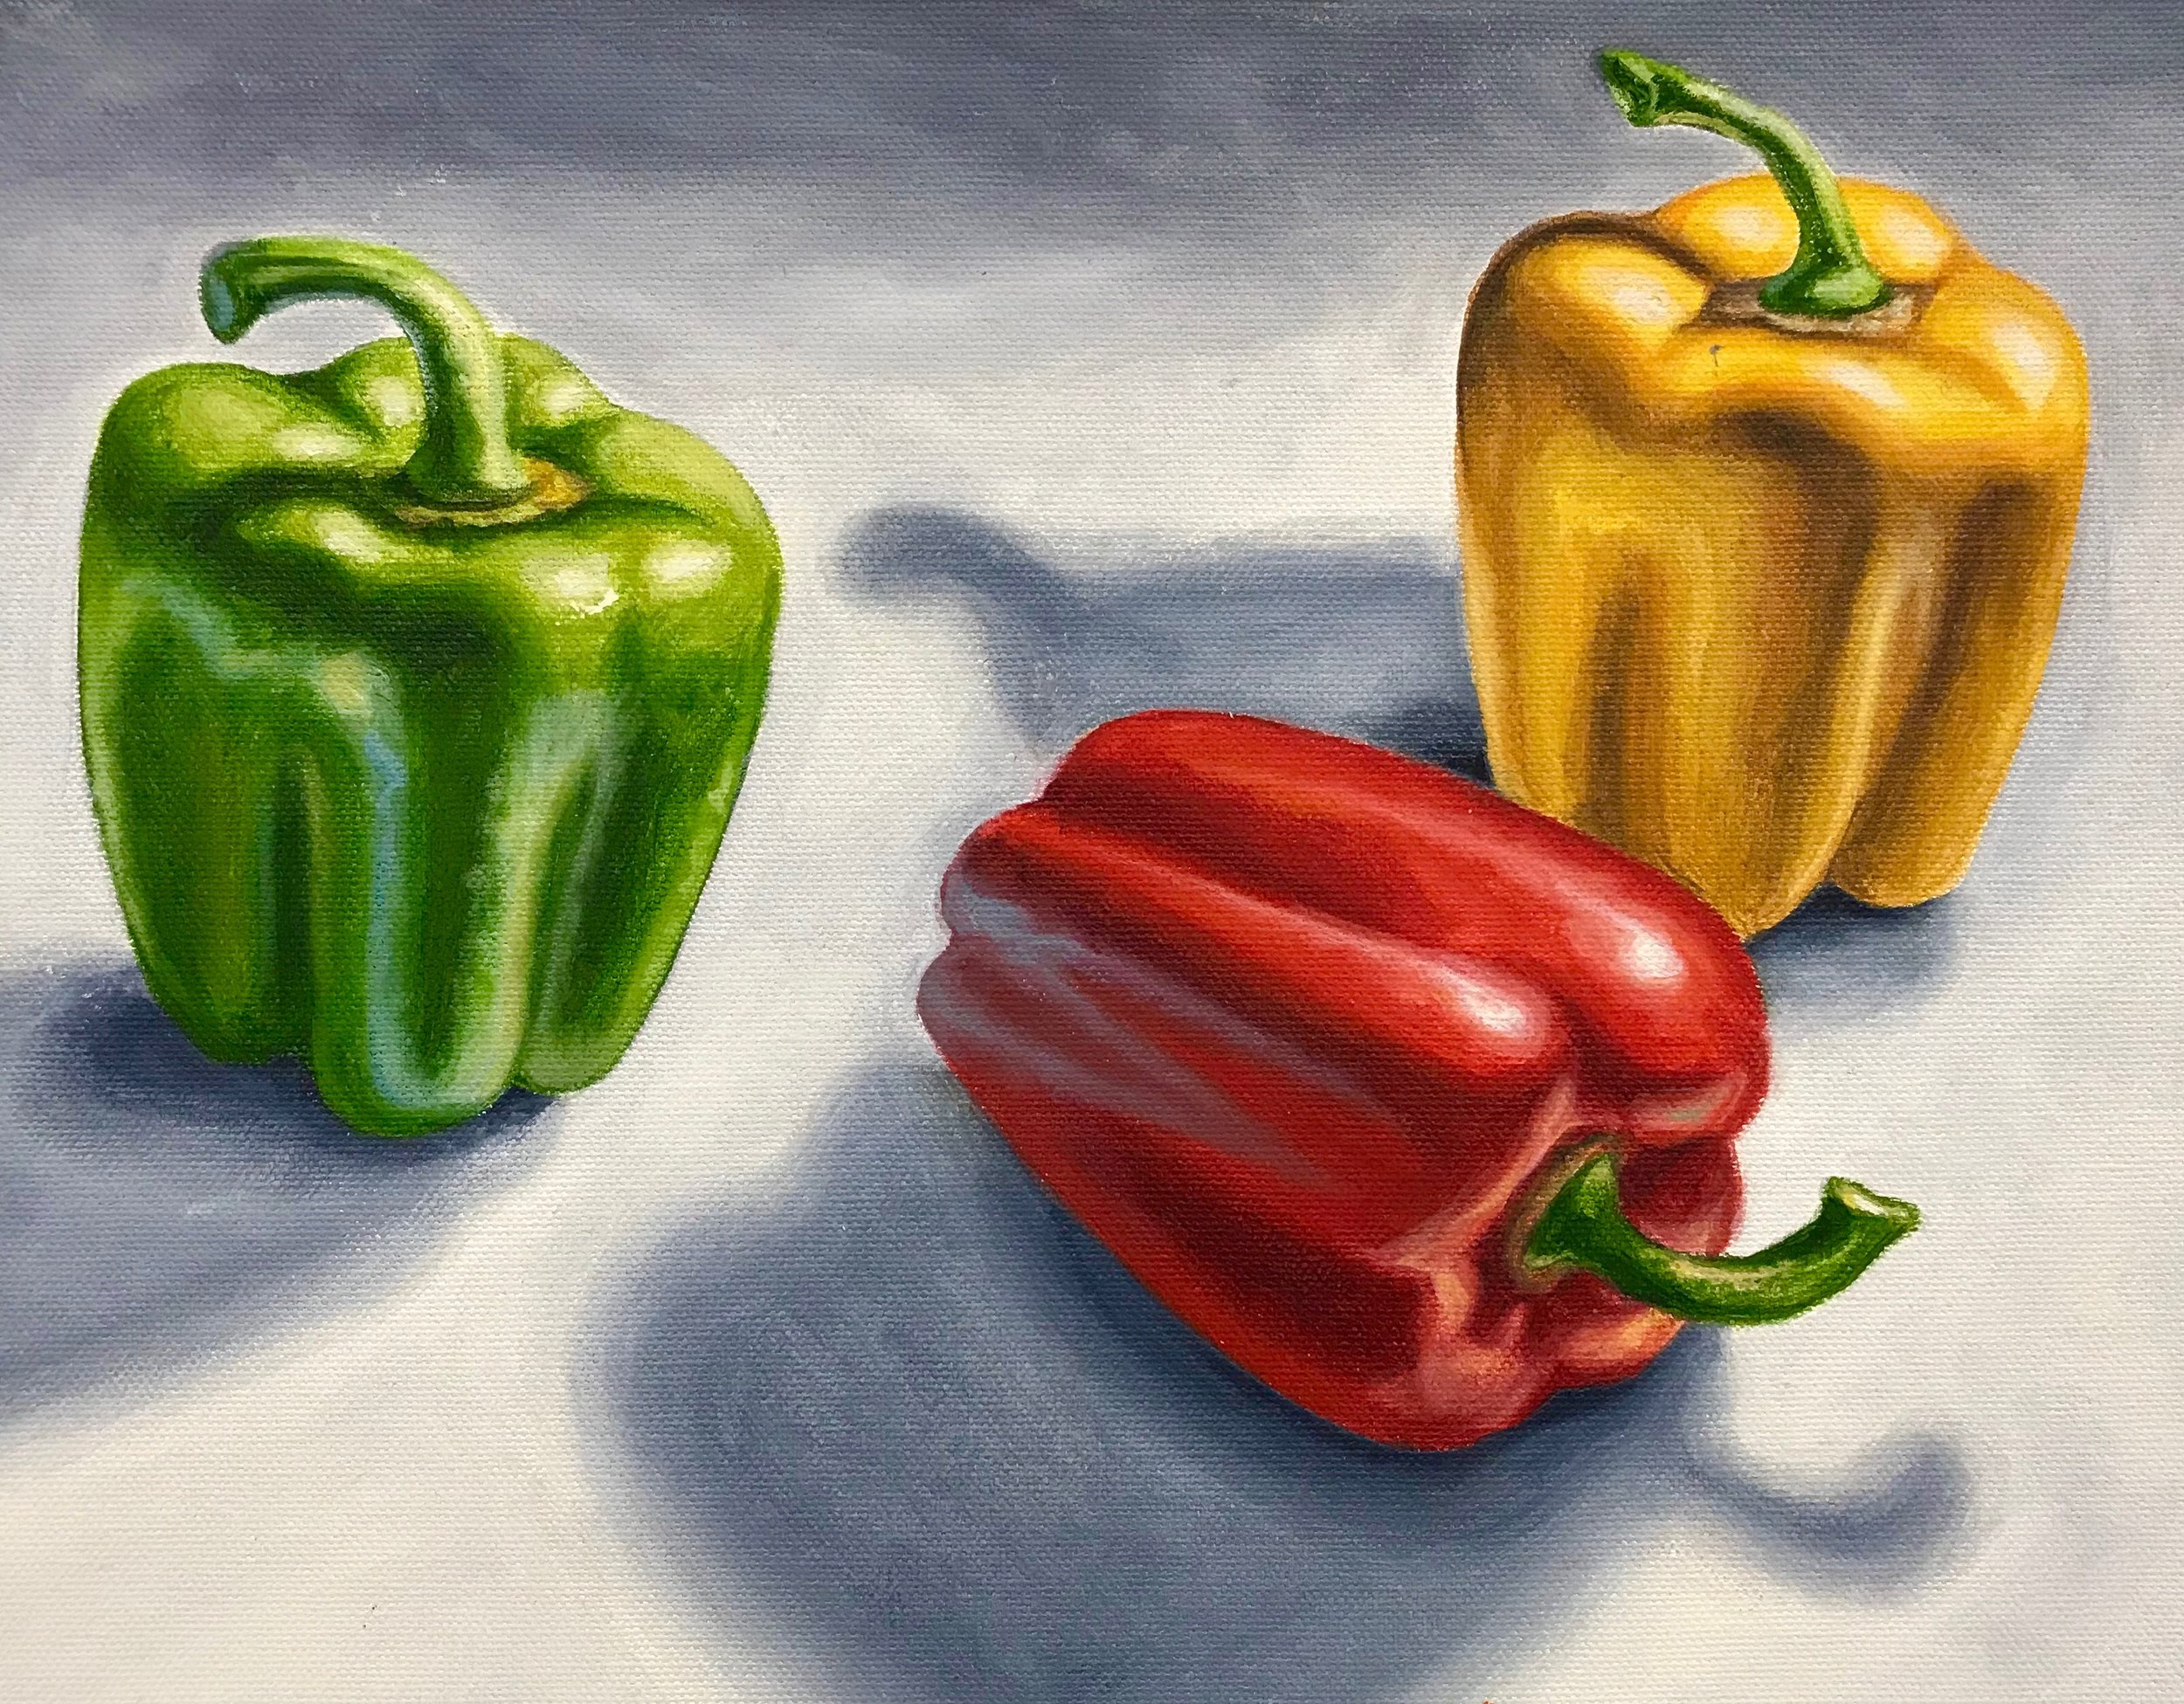 Fruit and Veggie Tutorials - Like the first painting taught at Red Dot,the fruit tutorial guides you through each step of an oil painting.The fake-veggie tutorial teaches the same process for more practice.